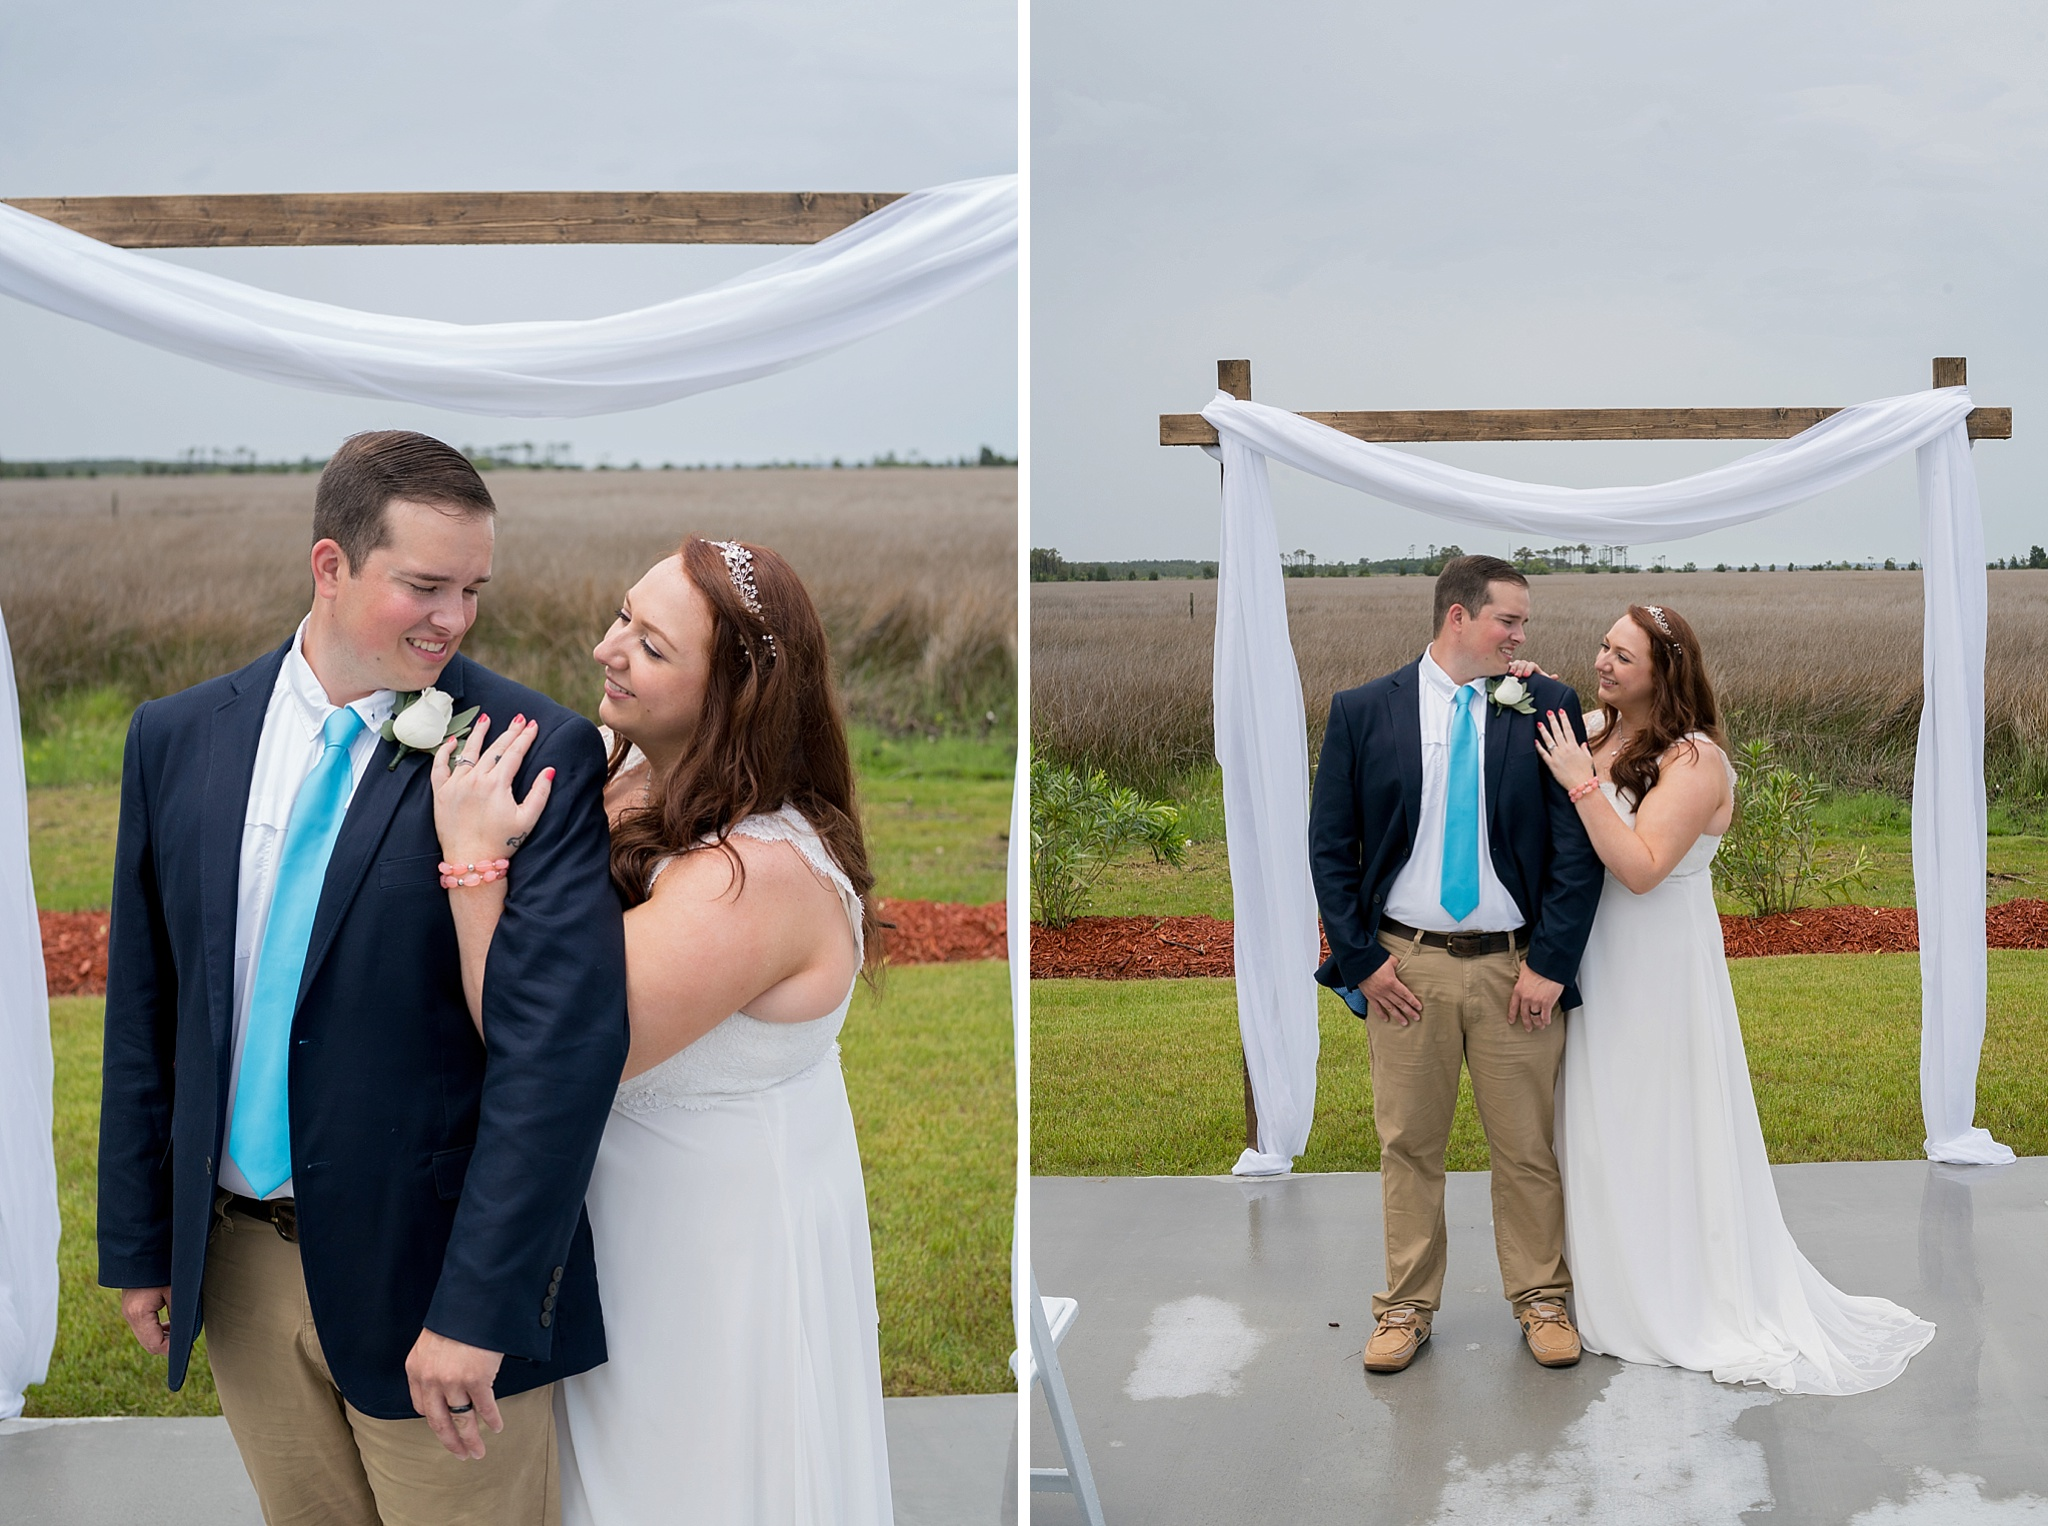 Manteo-NC-Wedding-Photographer-146.jpg